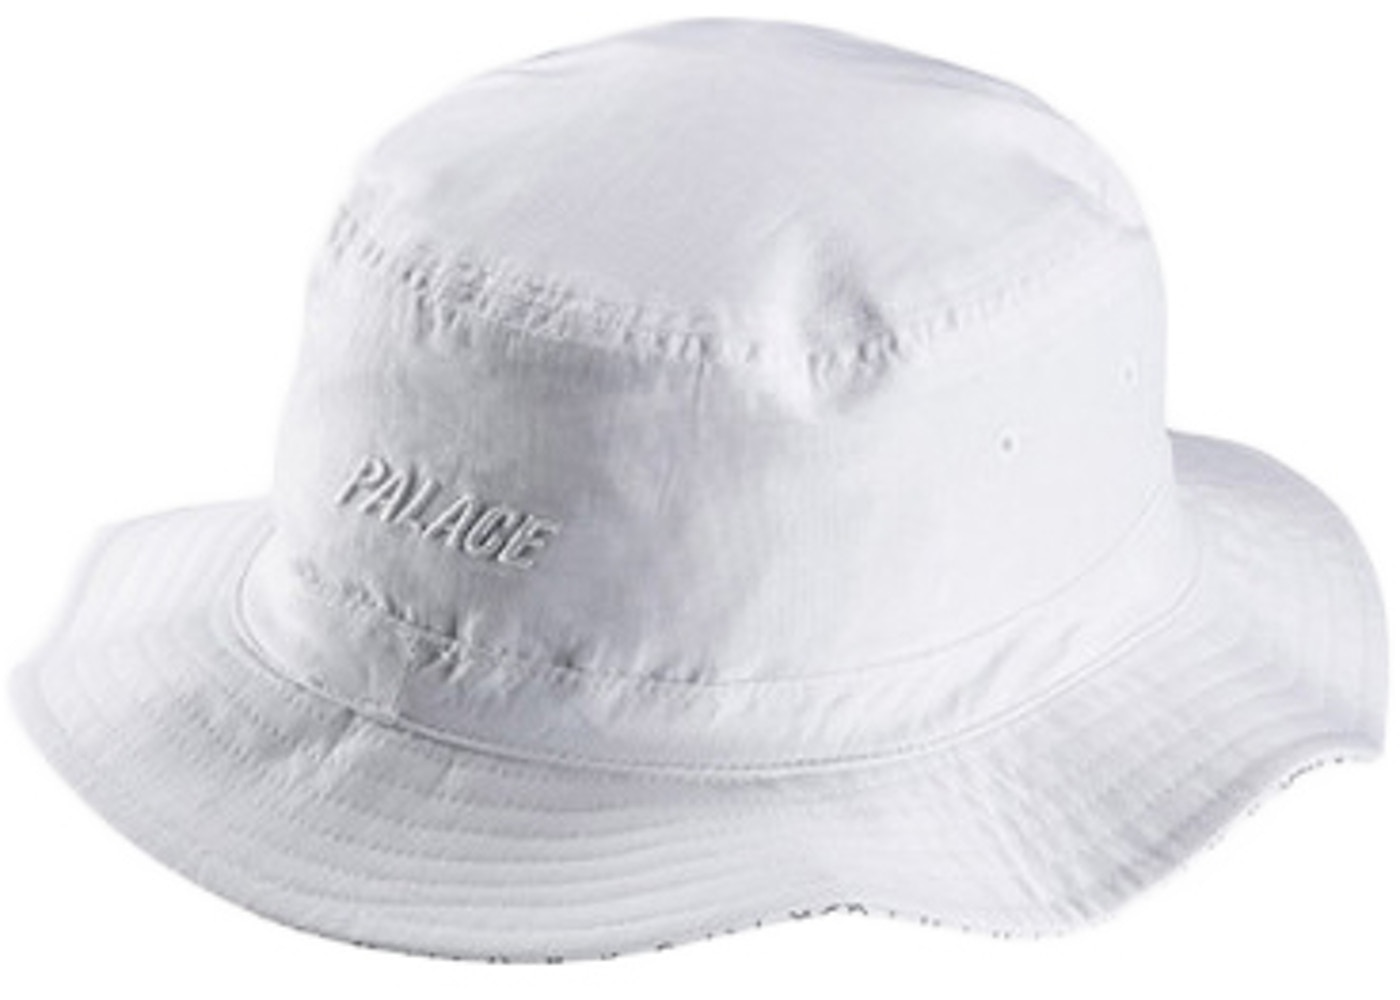 30706ae4 Palace adidas Reversible Bucket Hat White. adidas Reversible Bucket